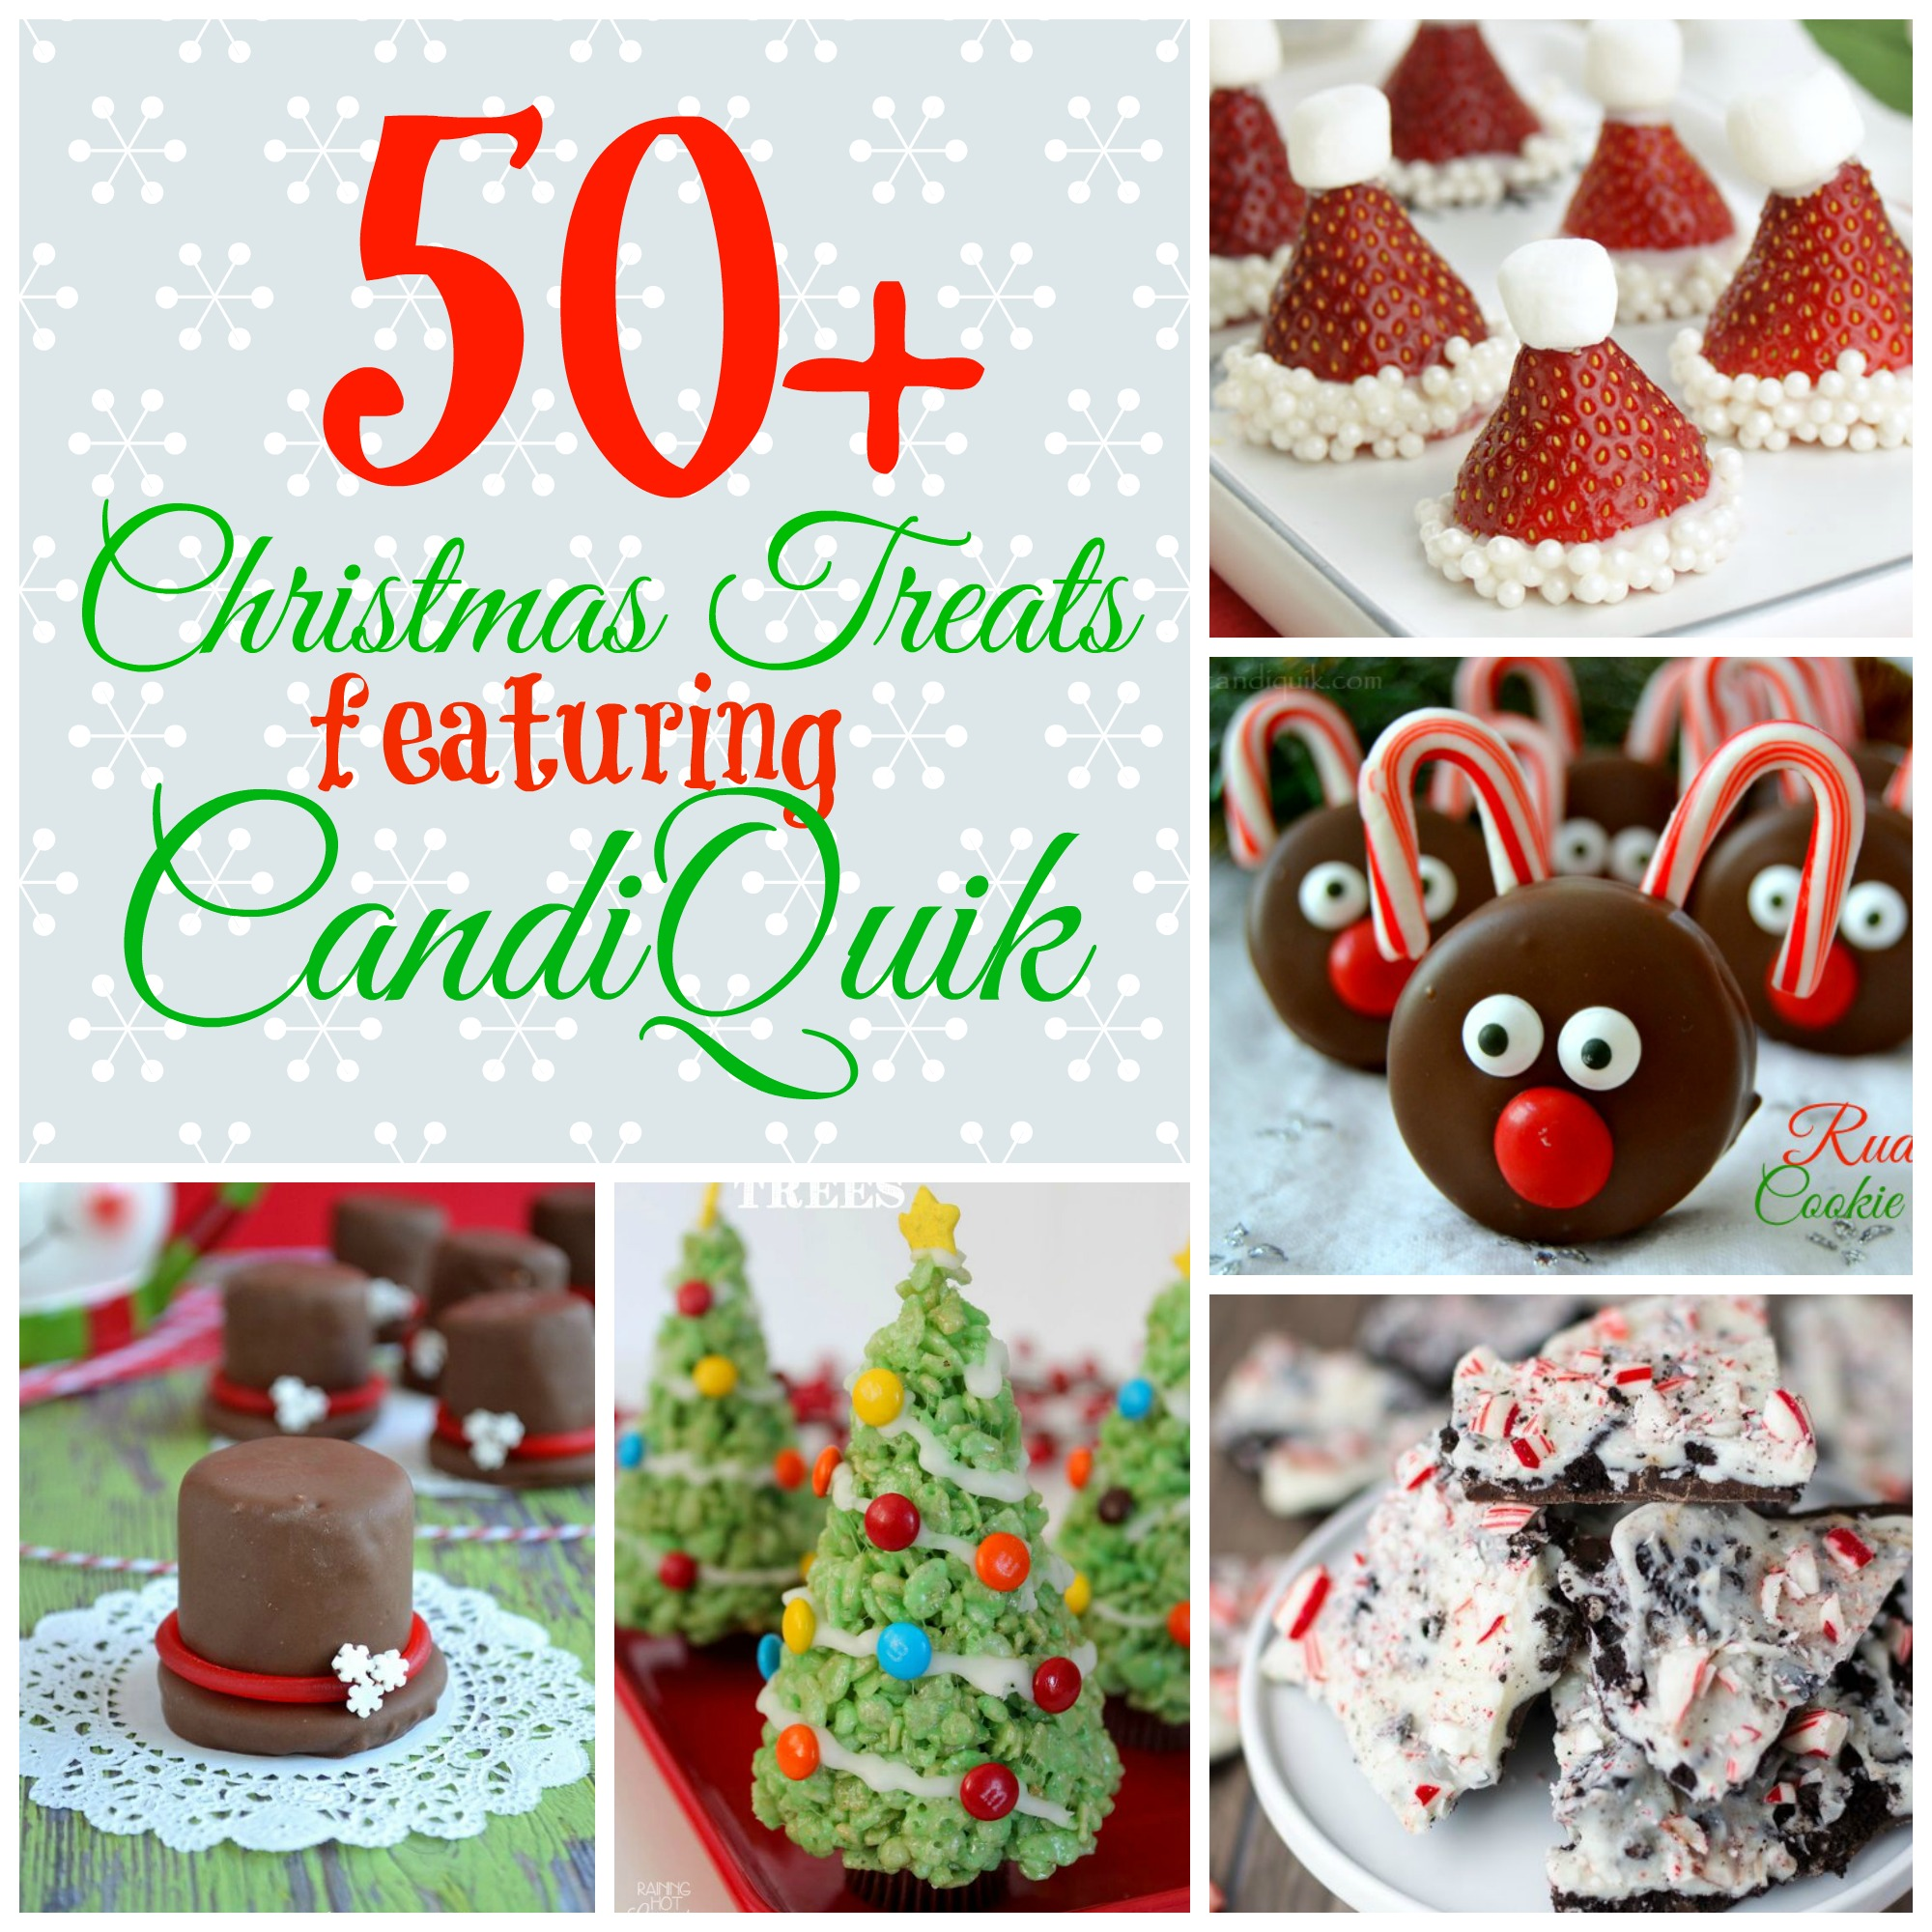 50 Christmas Treats Featuring CandiQuik